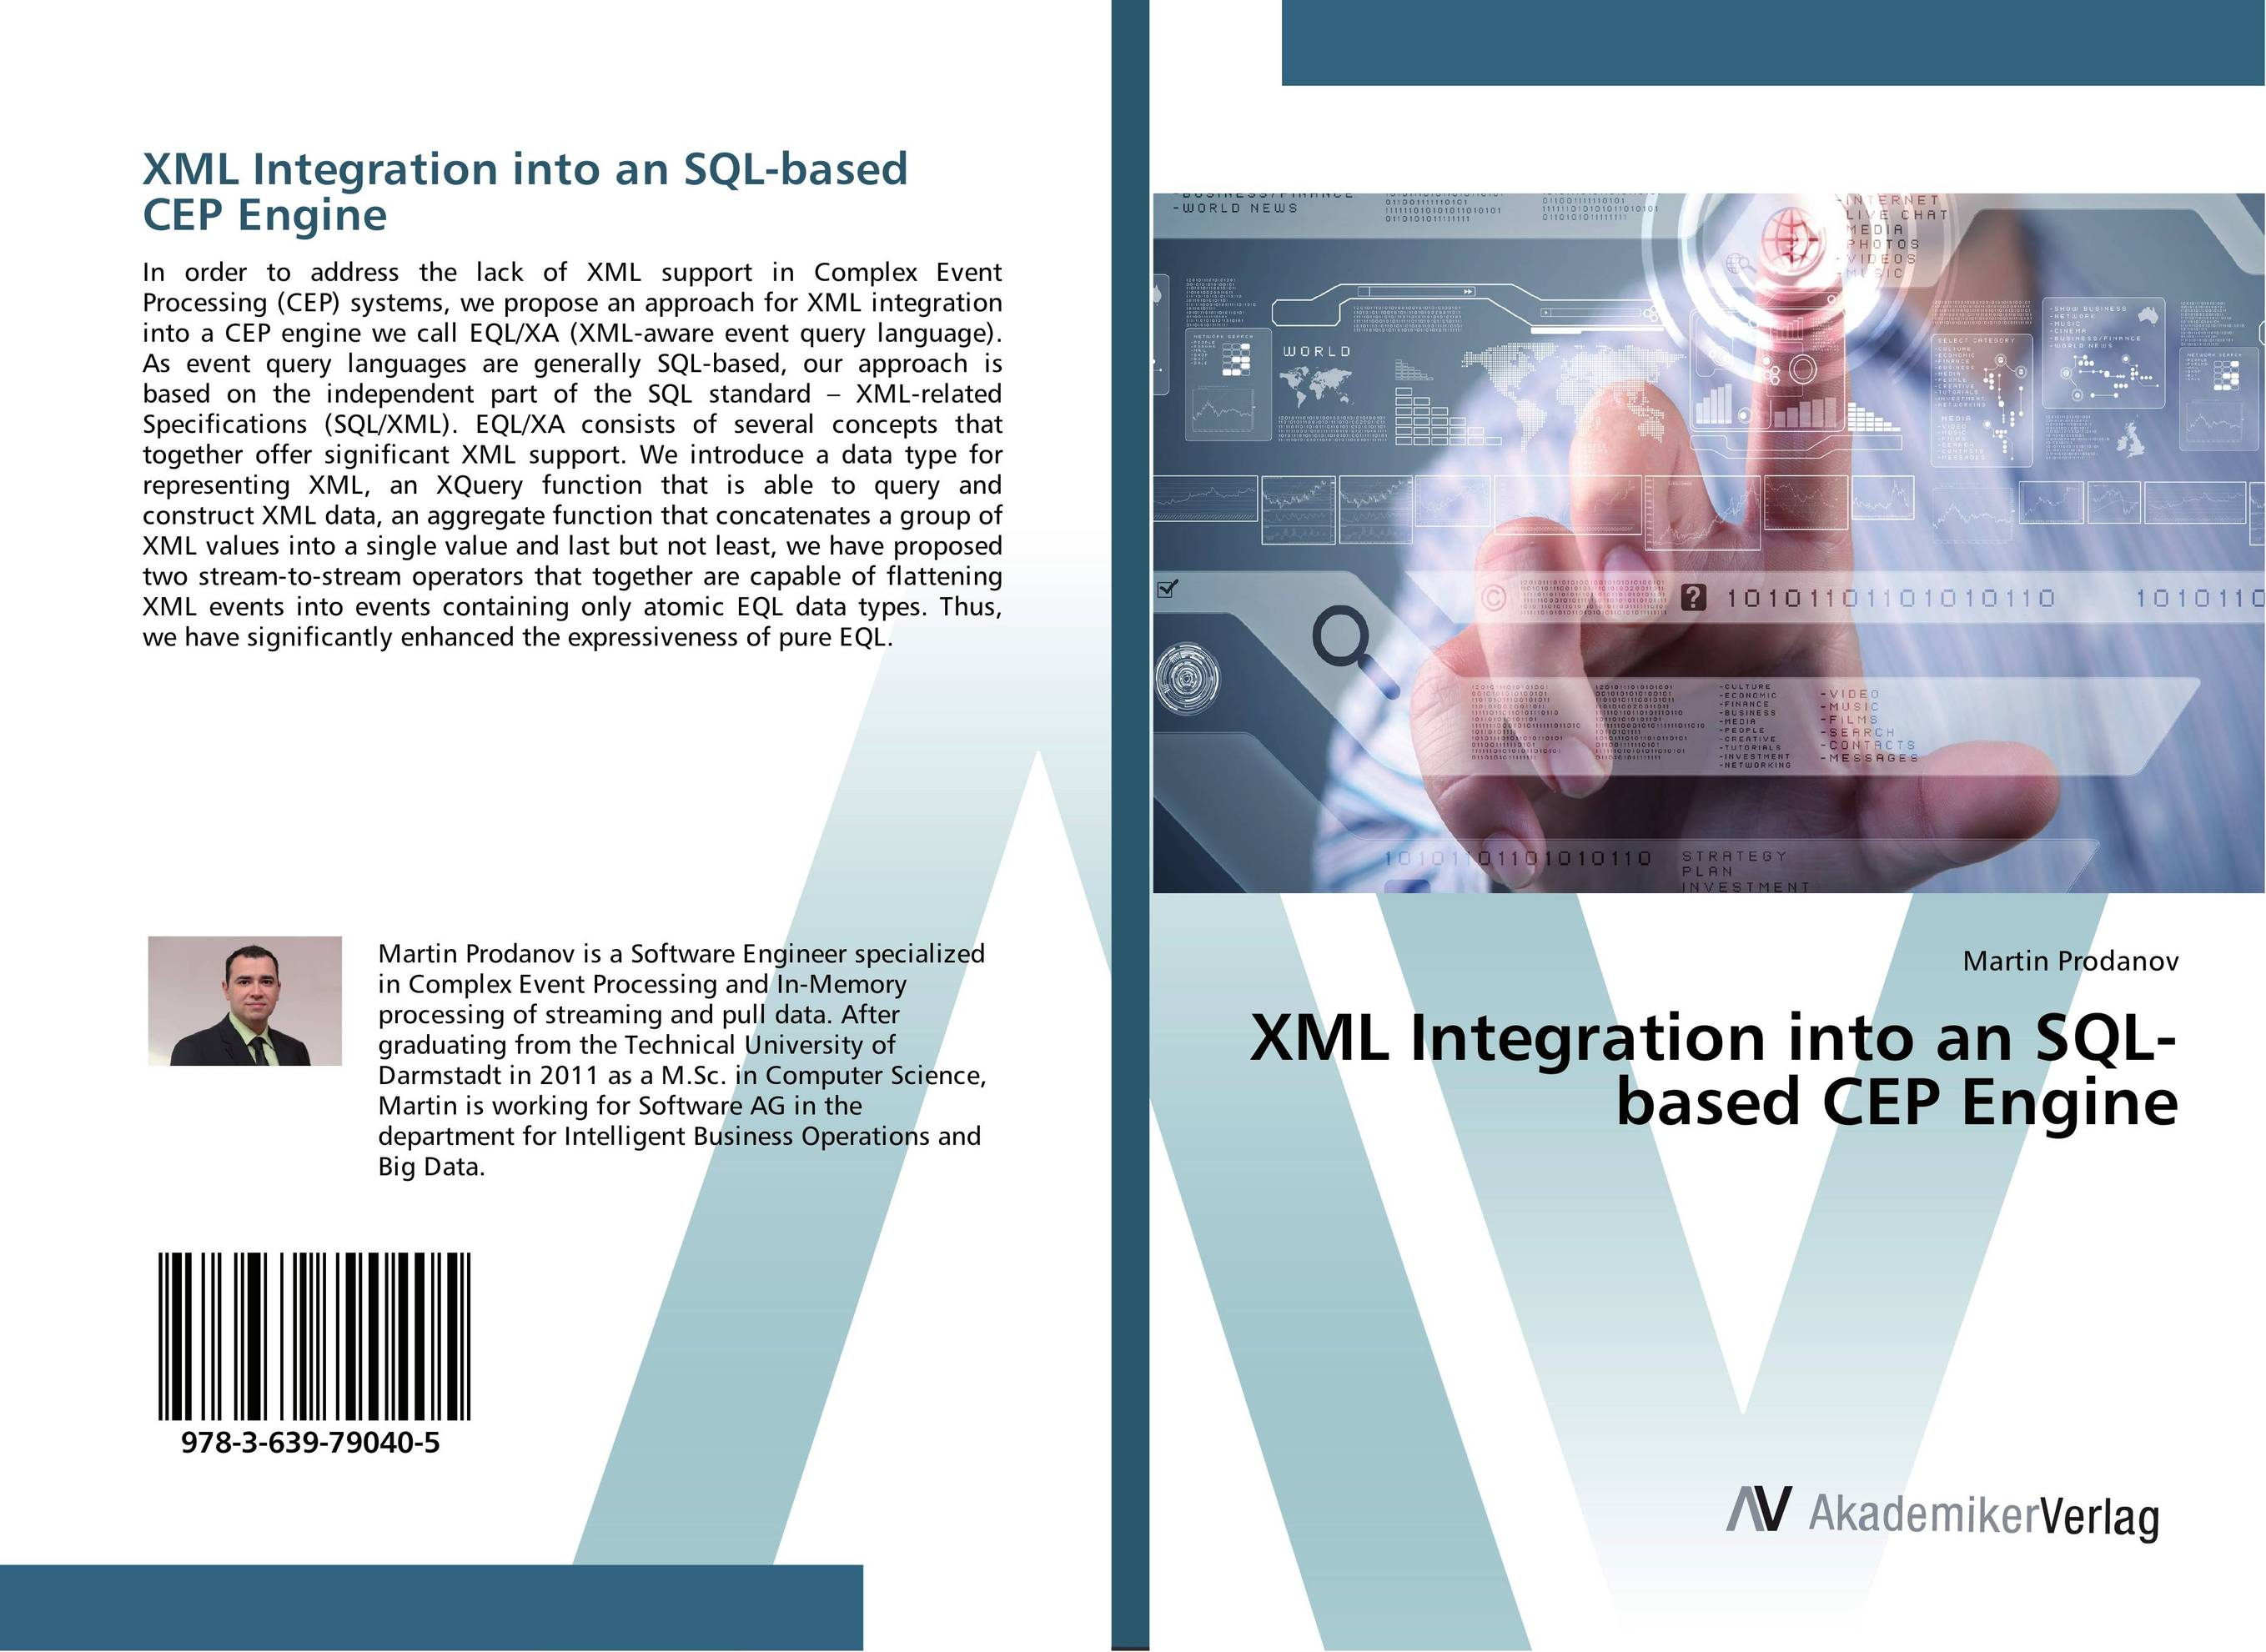 XML Integration into an SQL-based CEP Engine sitemap 465 xml